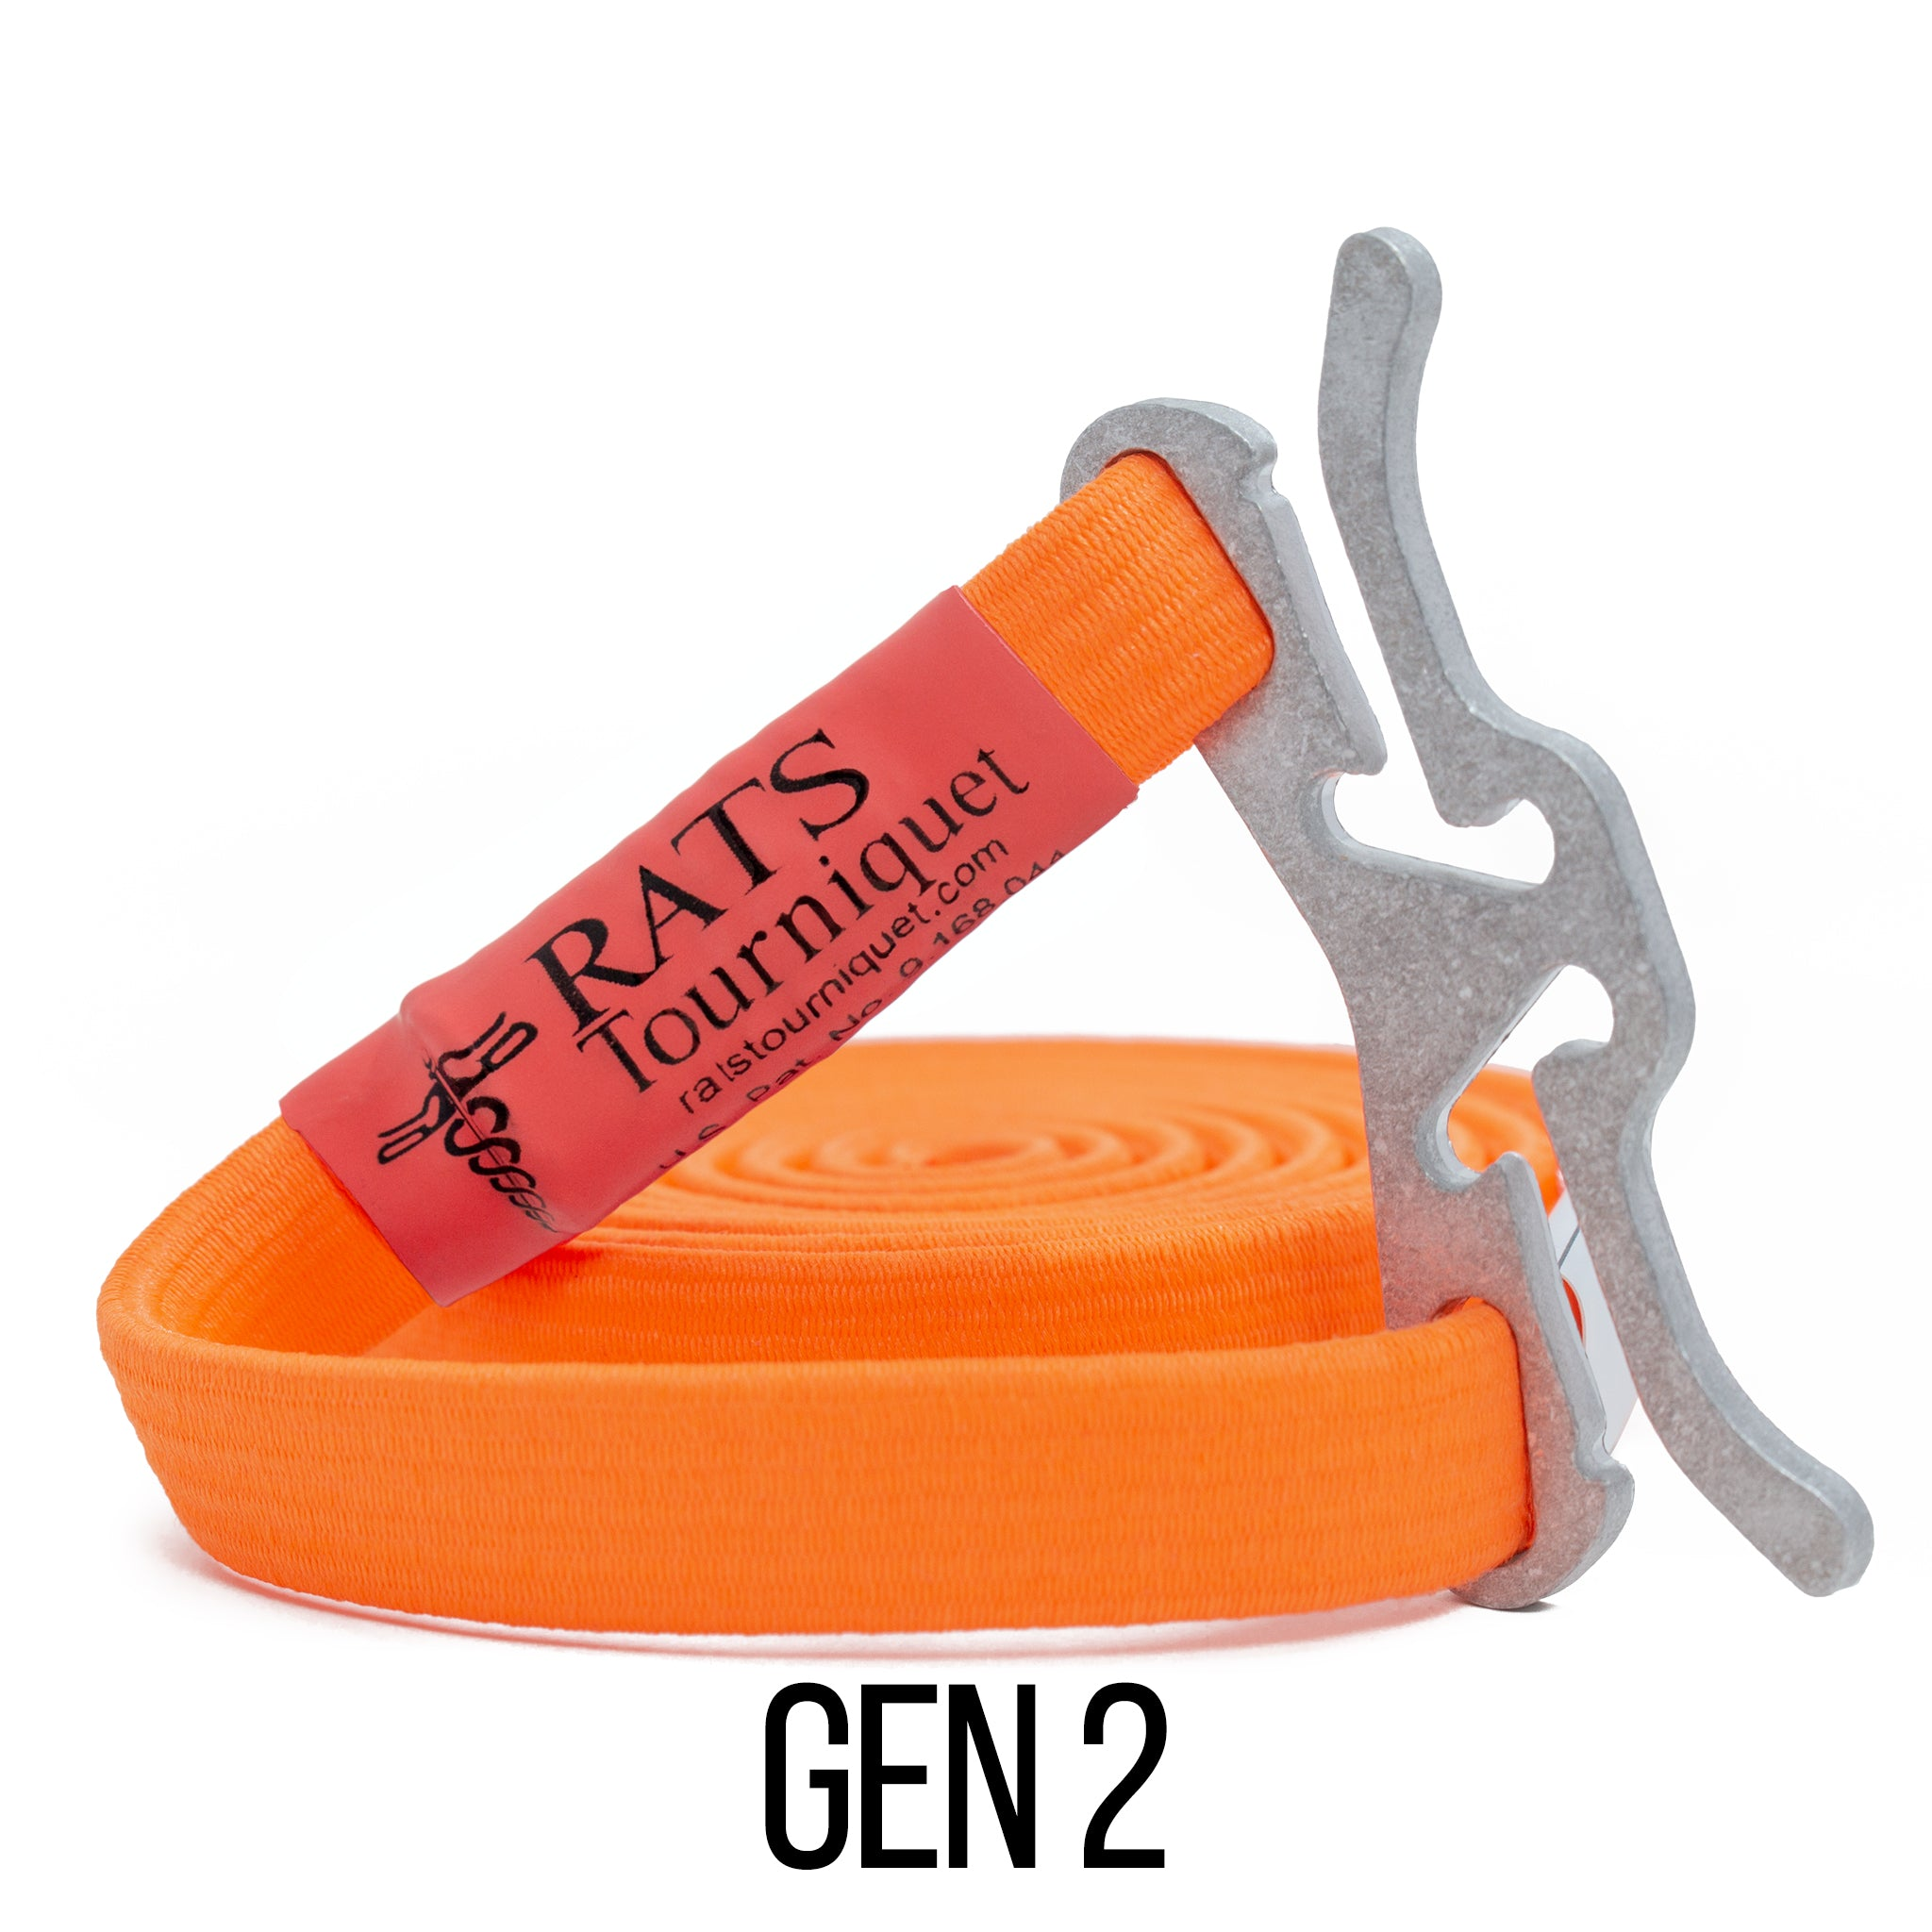 (Rapid Tourniquet) GEN 2 [Orange]